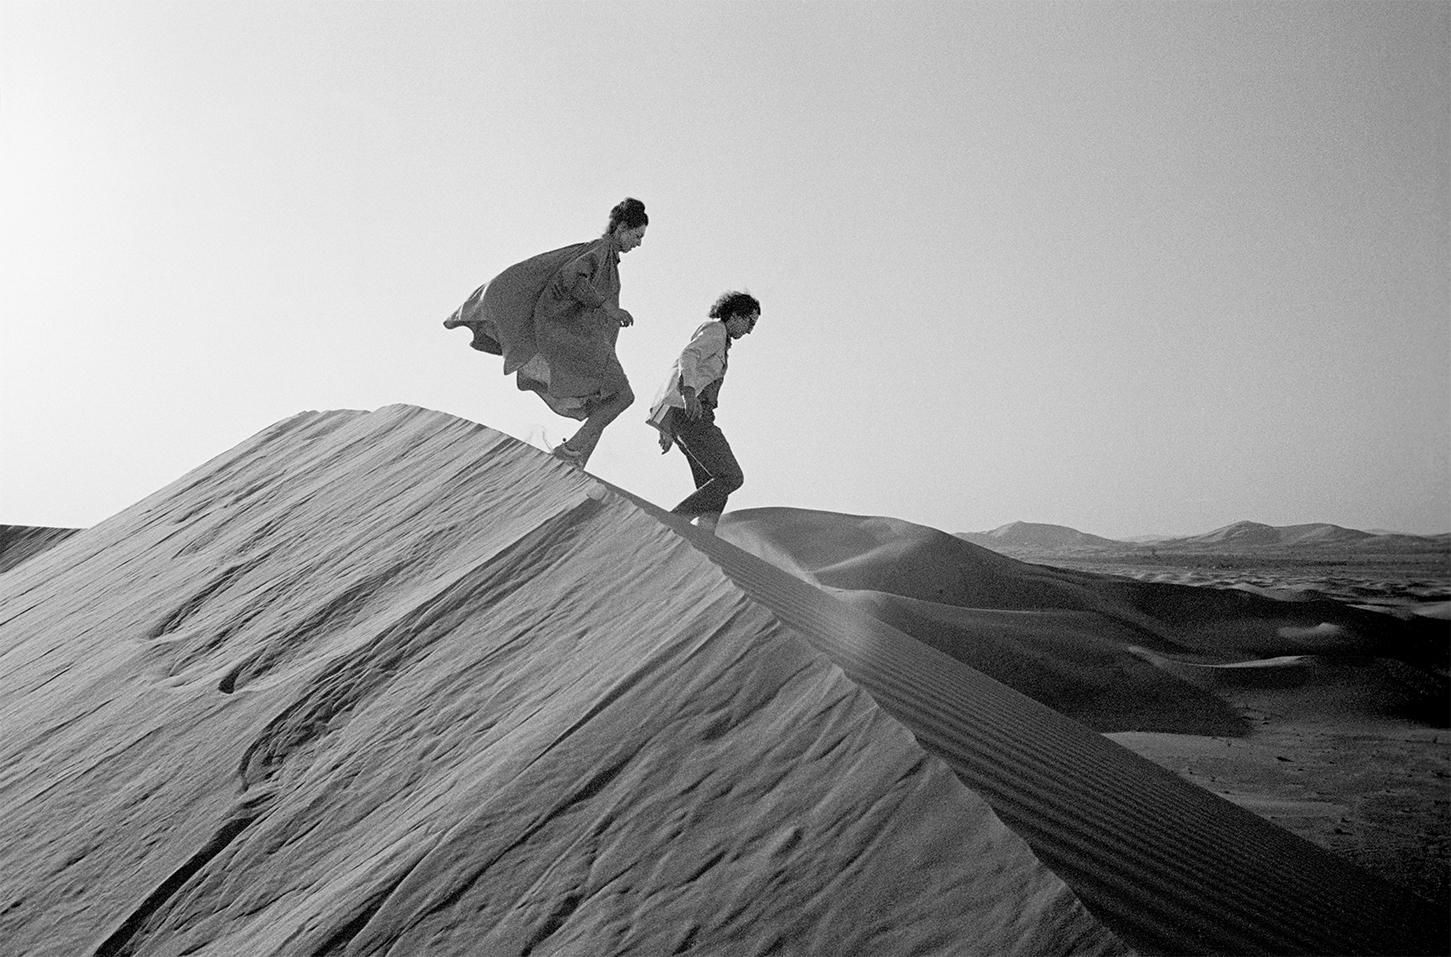 Christo and Jeanne-Claude looking for a possible site for The Mastaba, February 1982, Photo: Wolfgang Volz © 1982 Christo